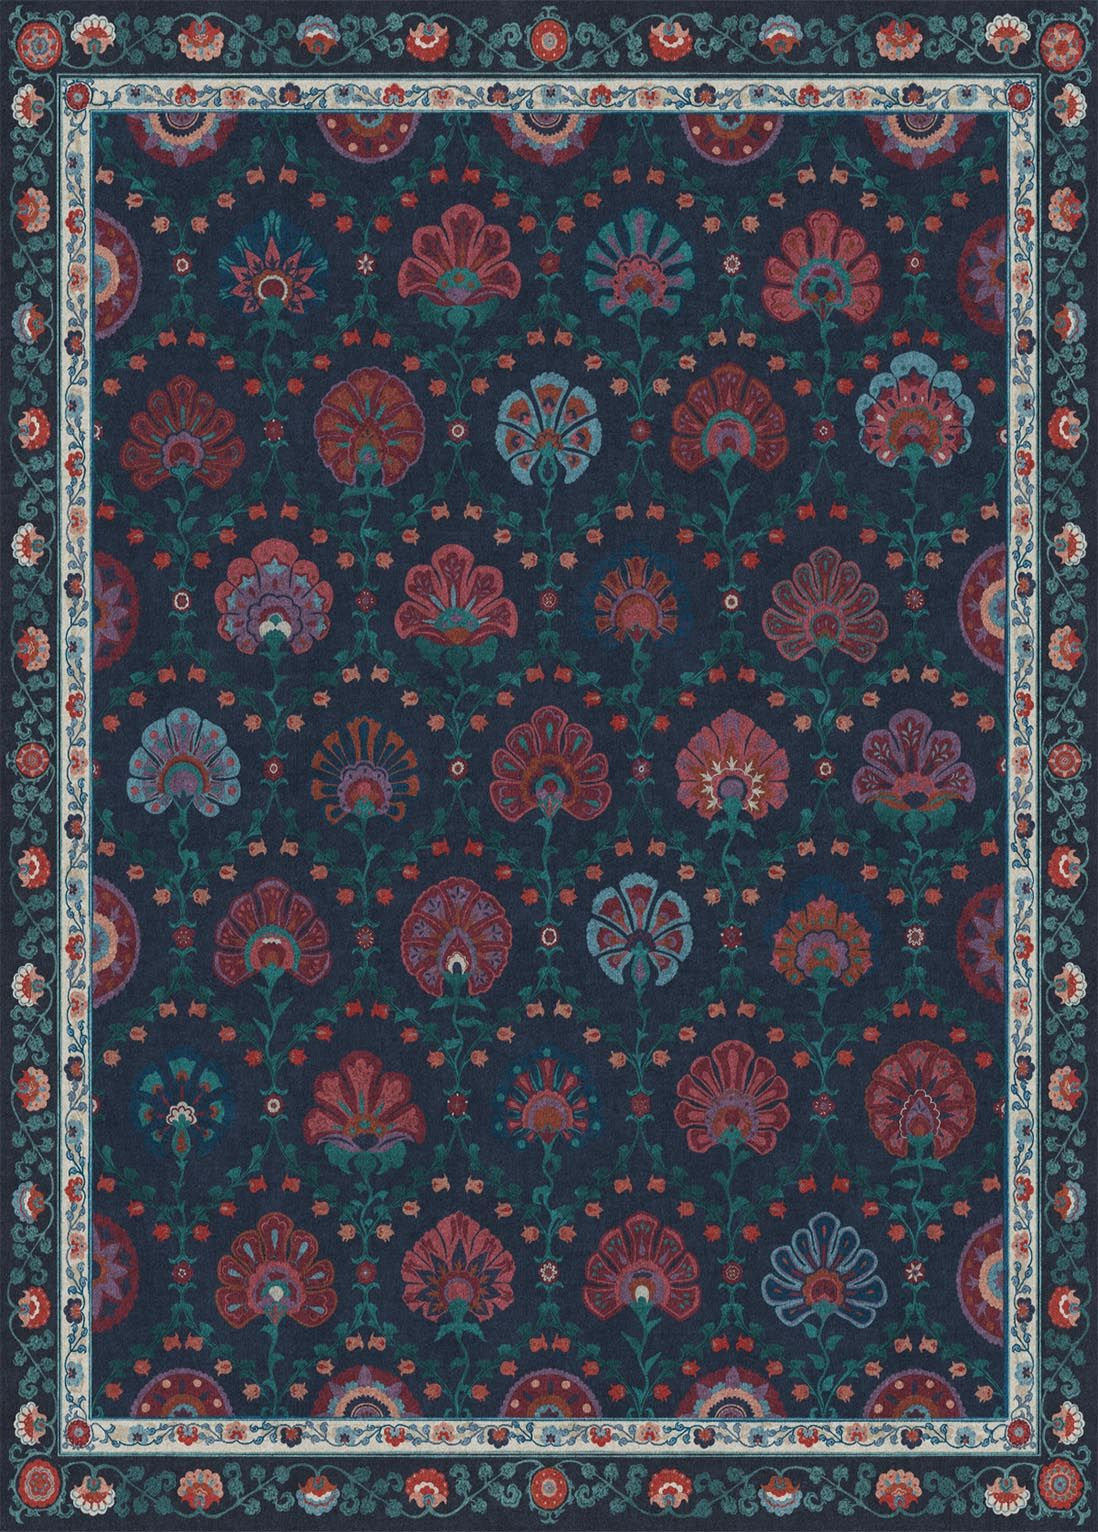 Sibel Sapphire Washable Rugs A Delightful Color Palette Of Garnet Teal Blue And Deep Navy Brightens And Beautifies Rugs Washable Rugs Machine Washable Rugs